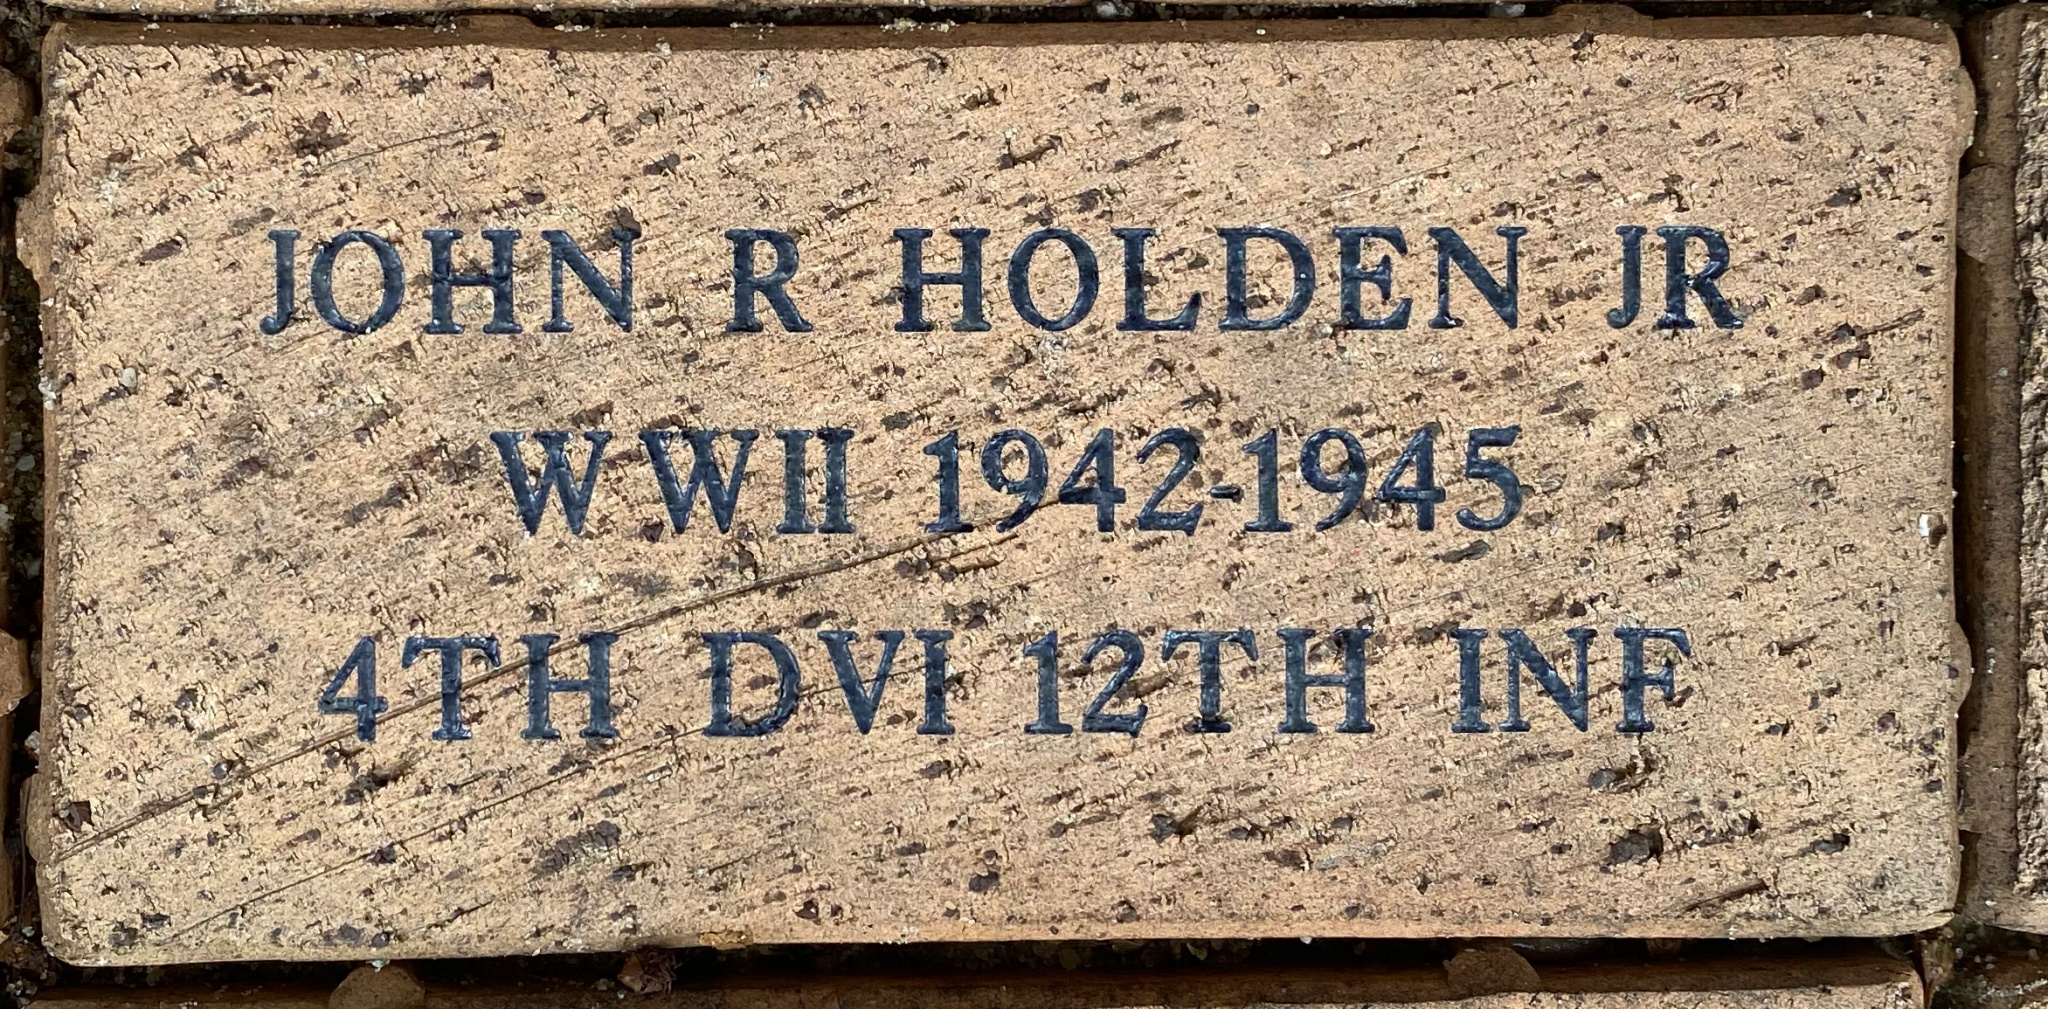 JOHN R HOLDEN JR WWII 1942-1945 4TH DVI 12TH INF